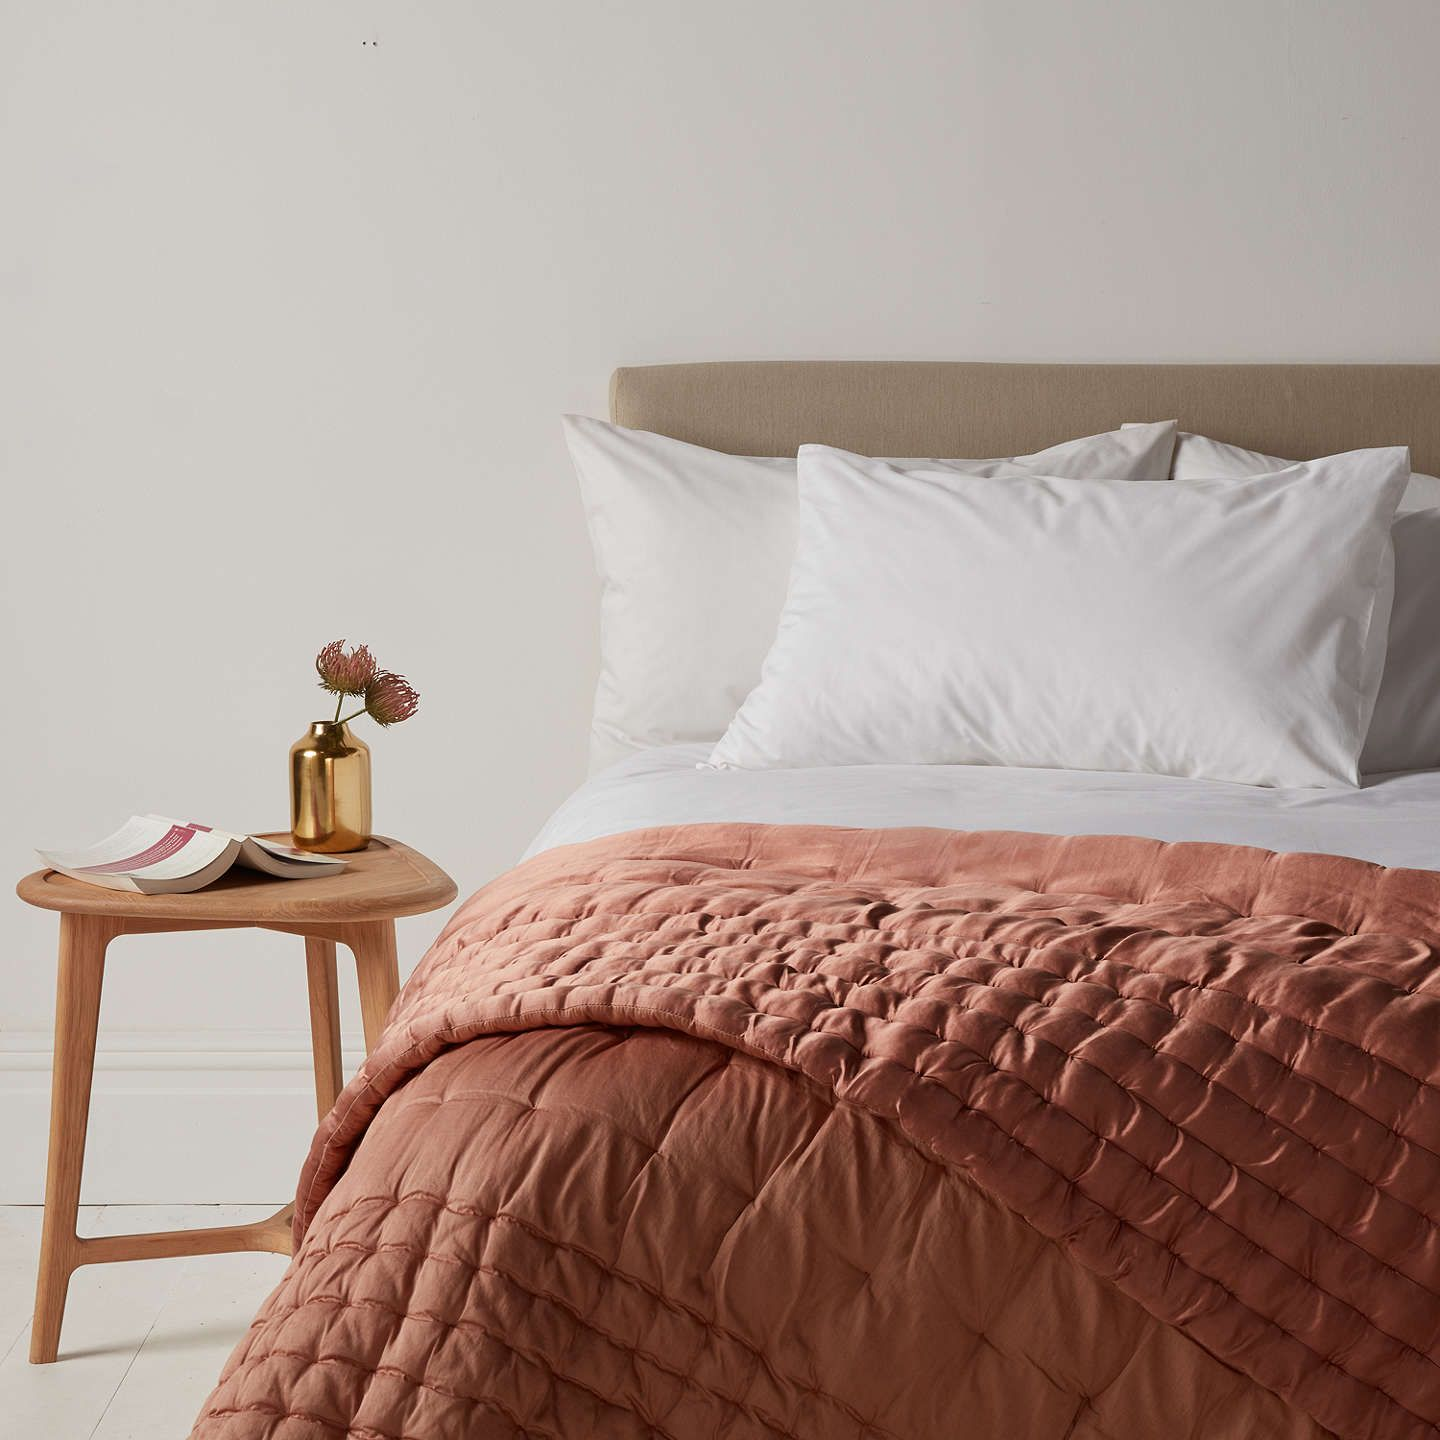 BuyJohn Lewis Boutique Hotel Silk Bedspread L260